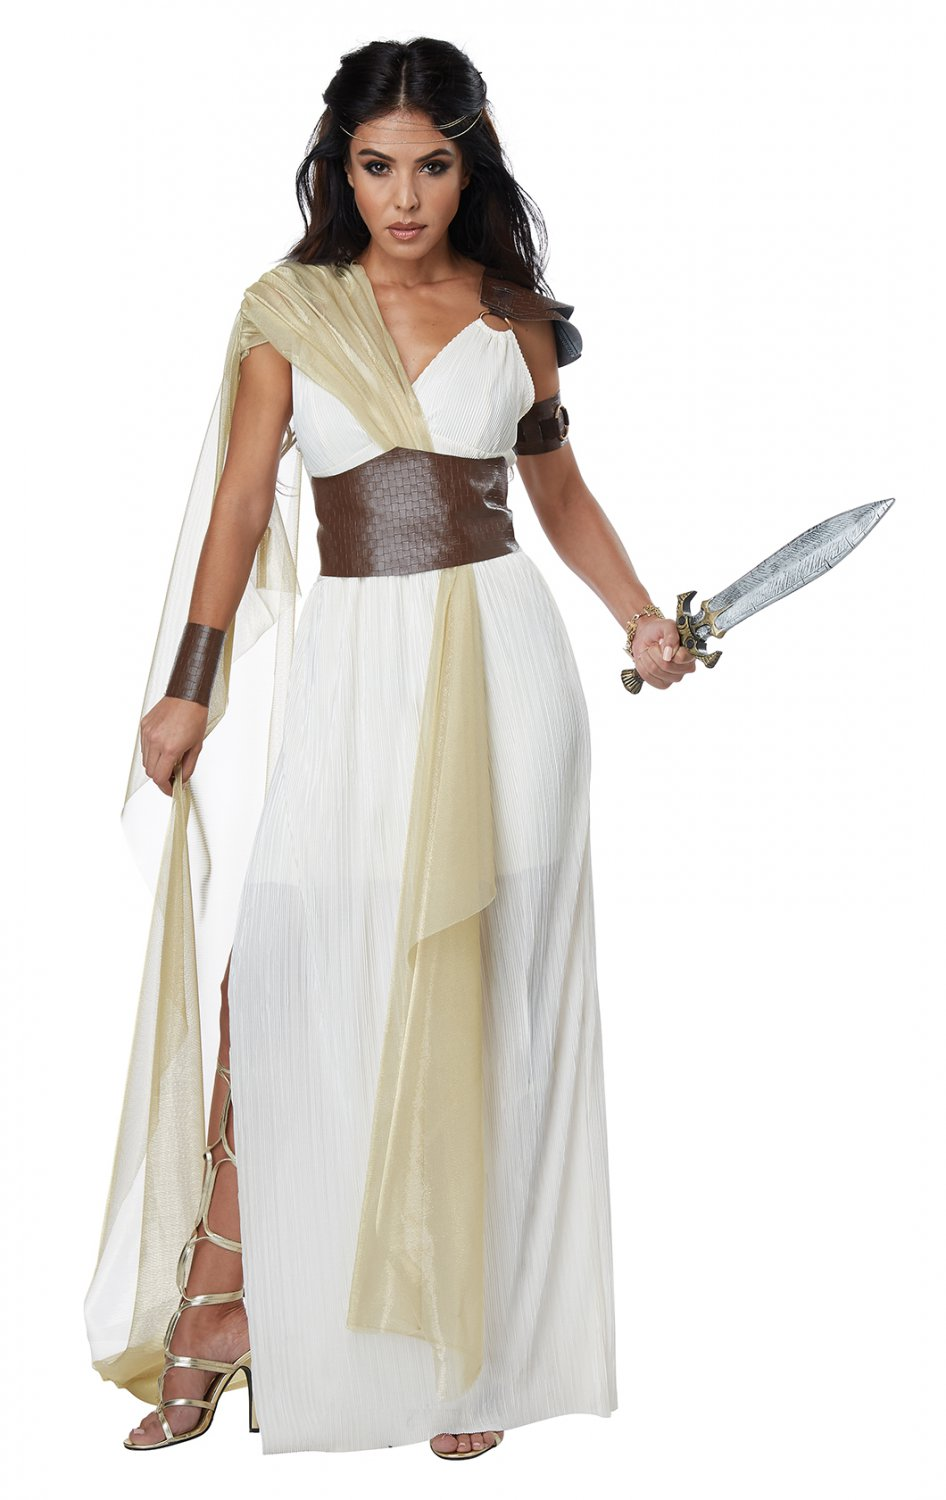 Size: Small #01446 Greek Goddess Spartan Warrior Queen Adult Costume